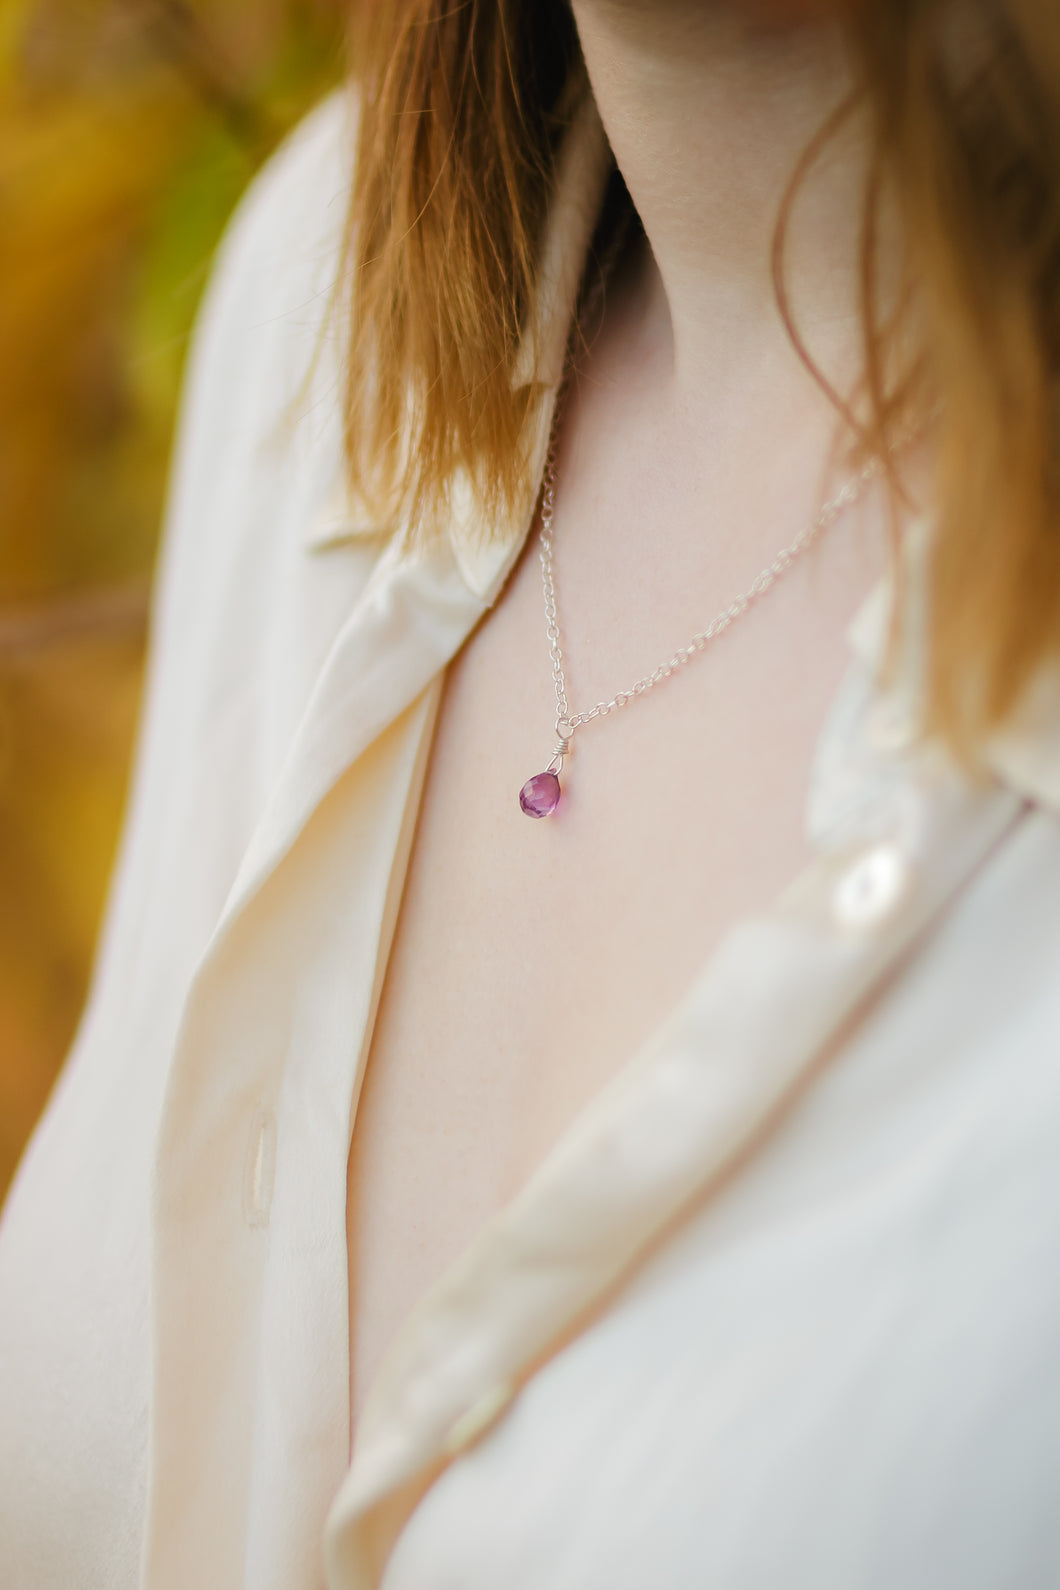 Dainty Amethyst Necklace